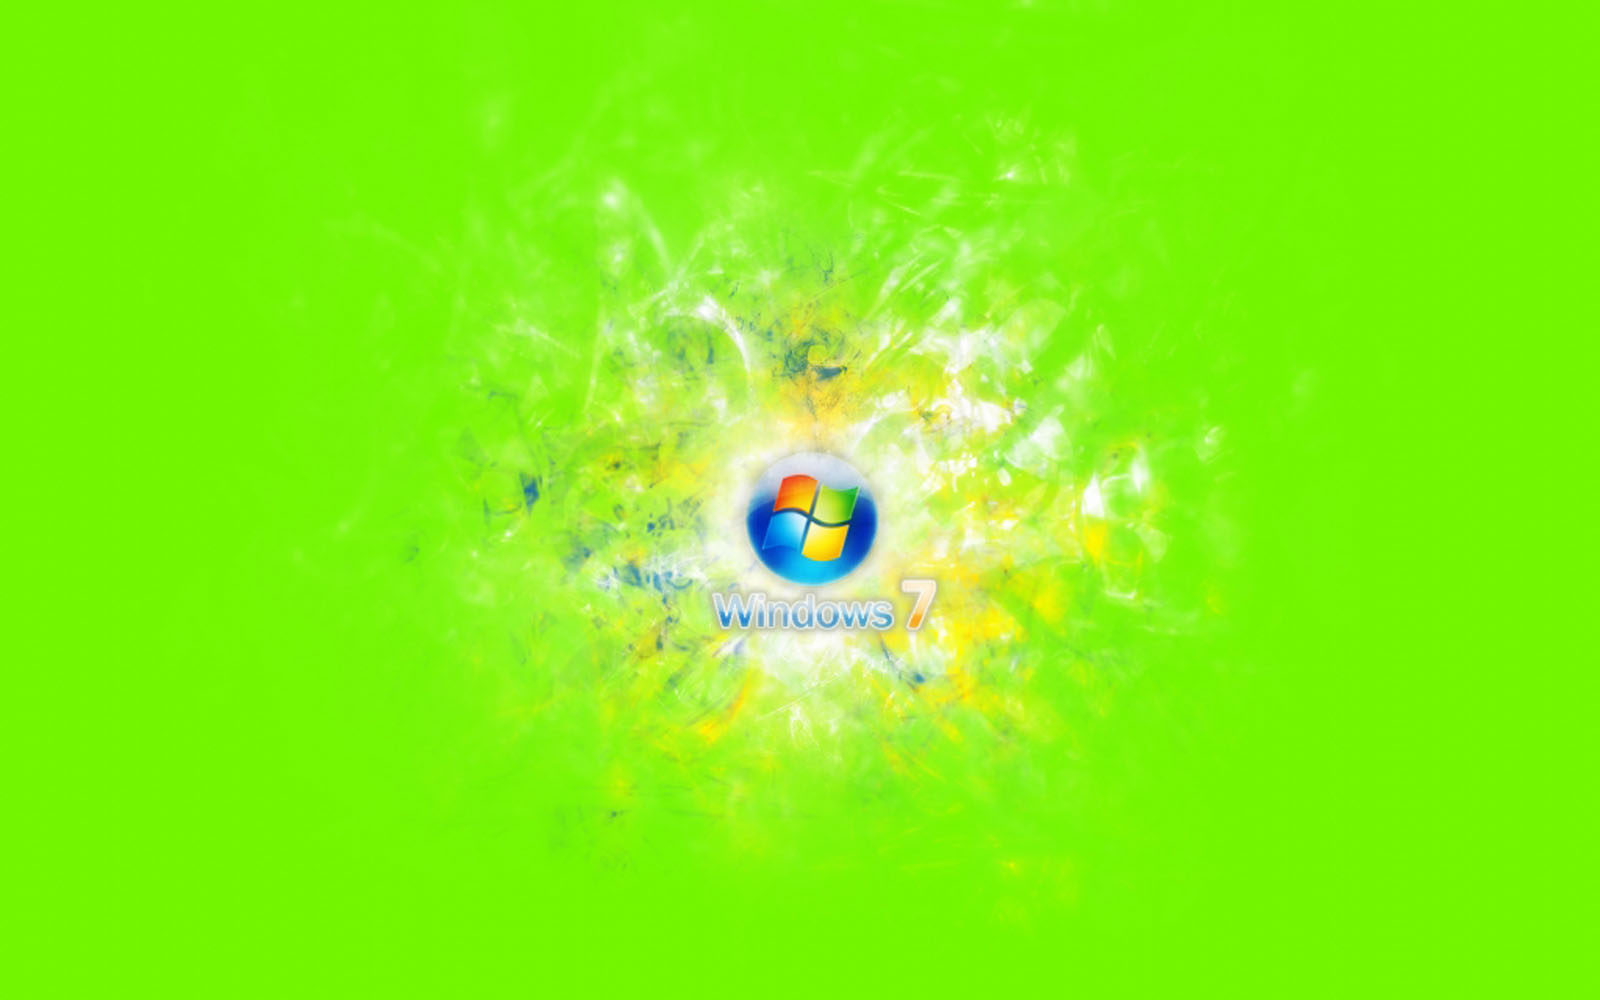 Windows 7 bright wallpapers top wallpaper desktop for Bright wallpaper